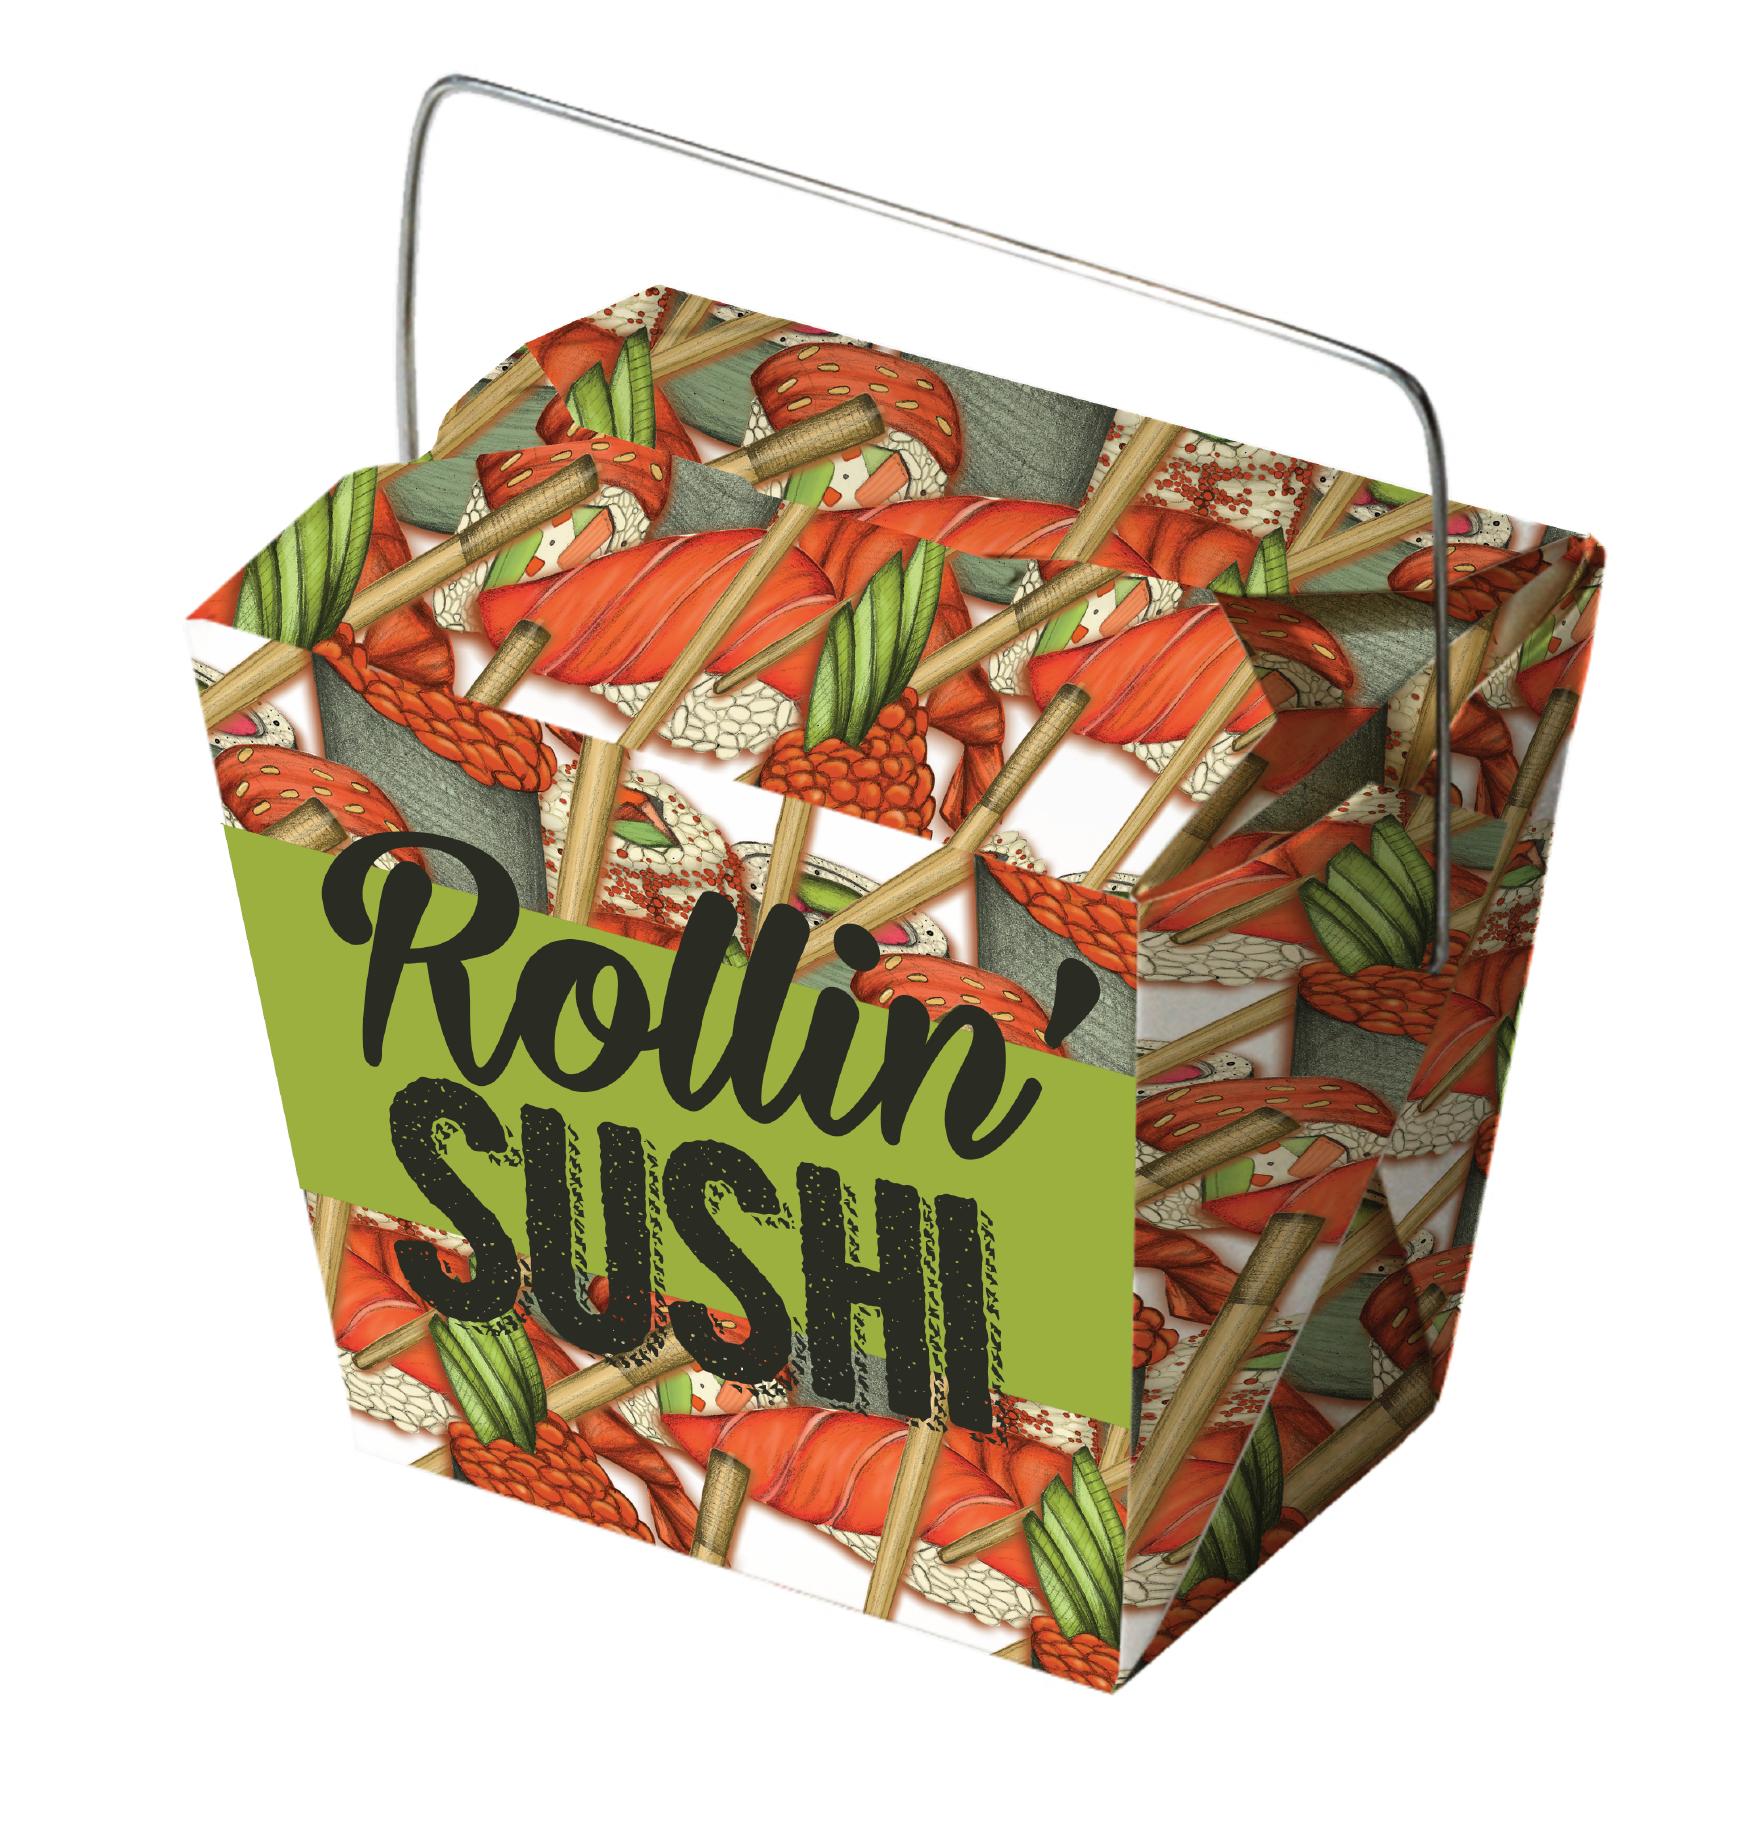 Rollin' Sushi Packaging Design